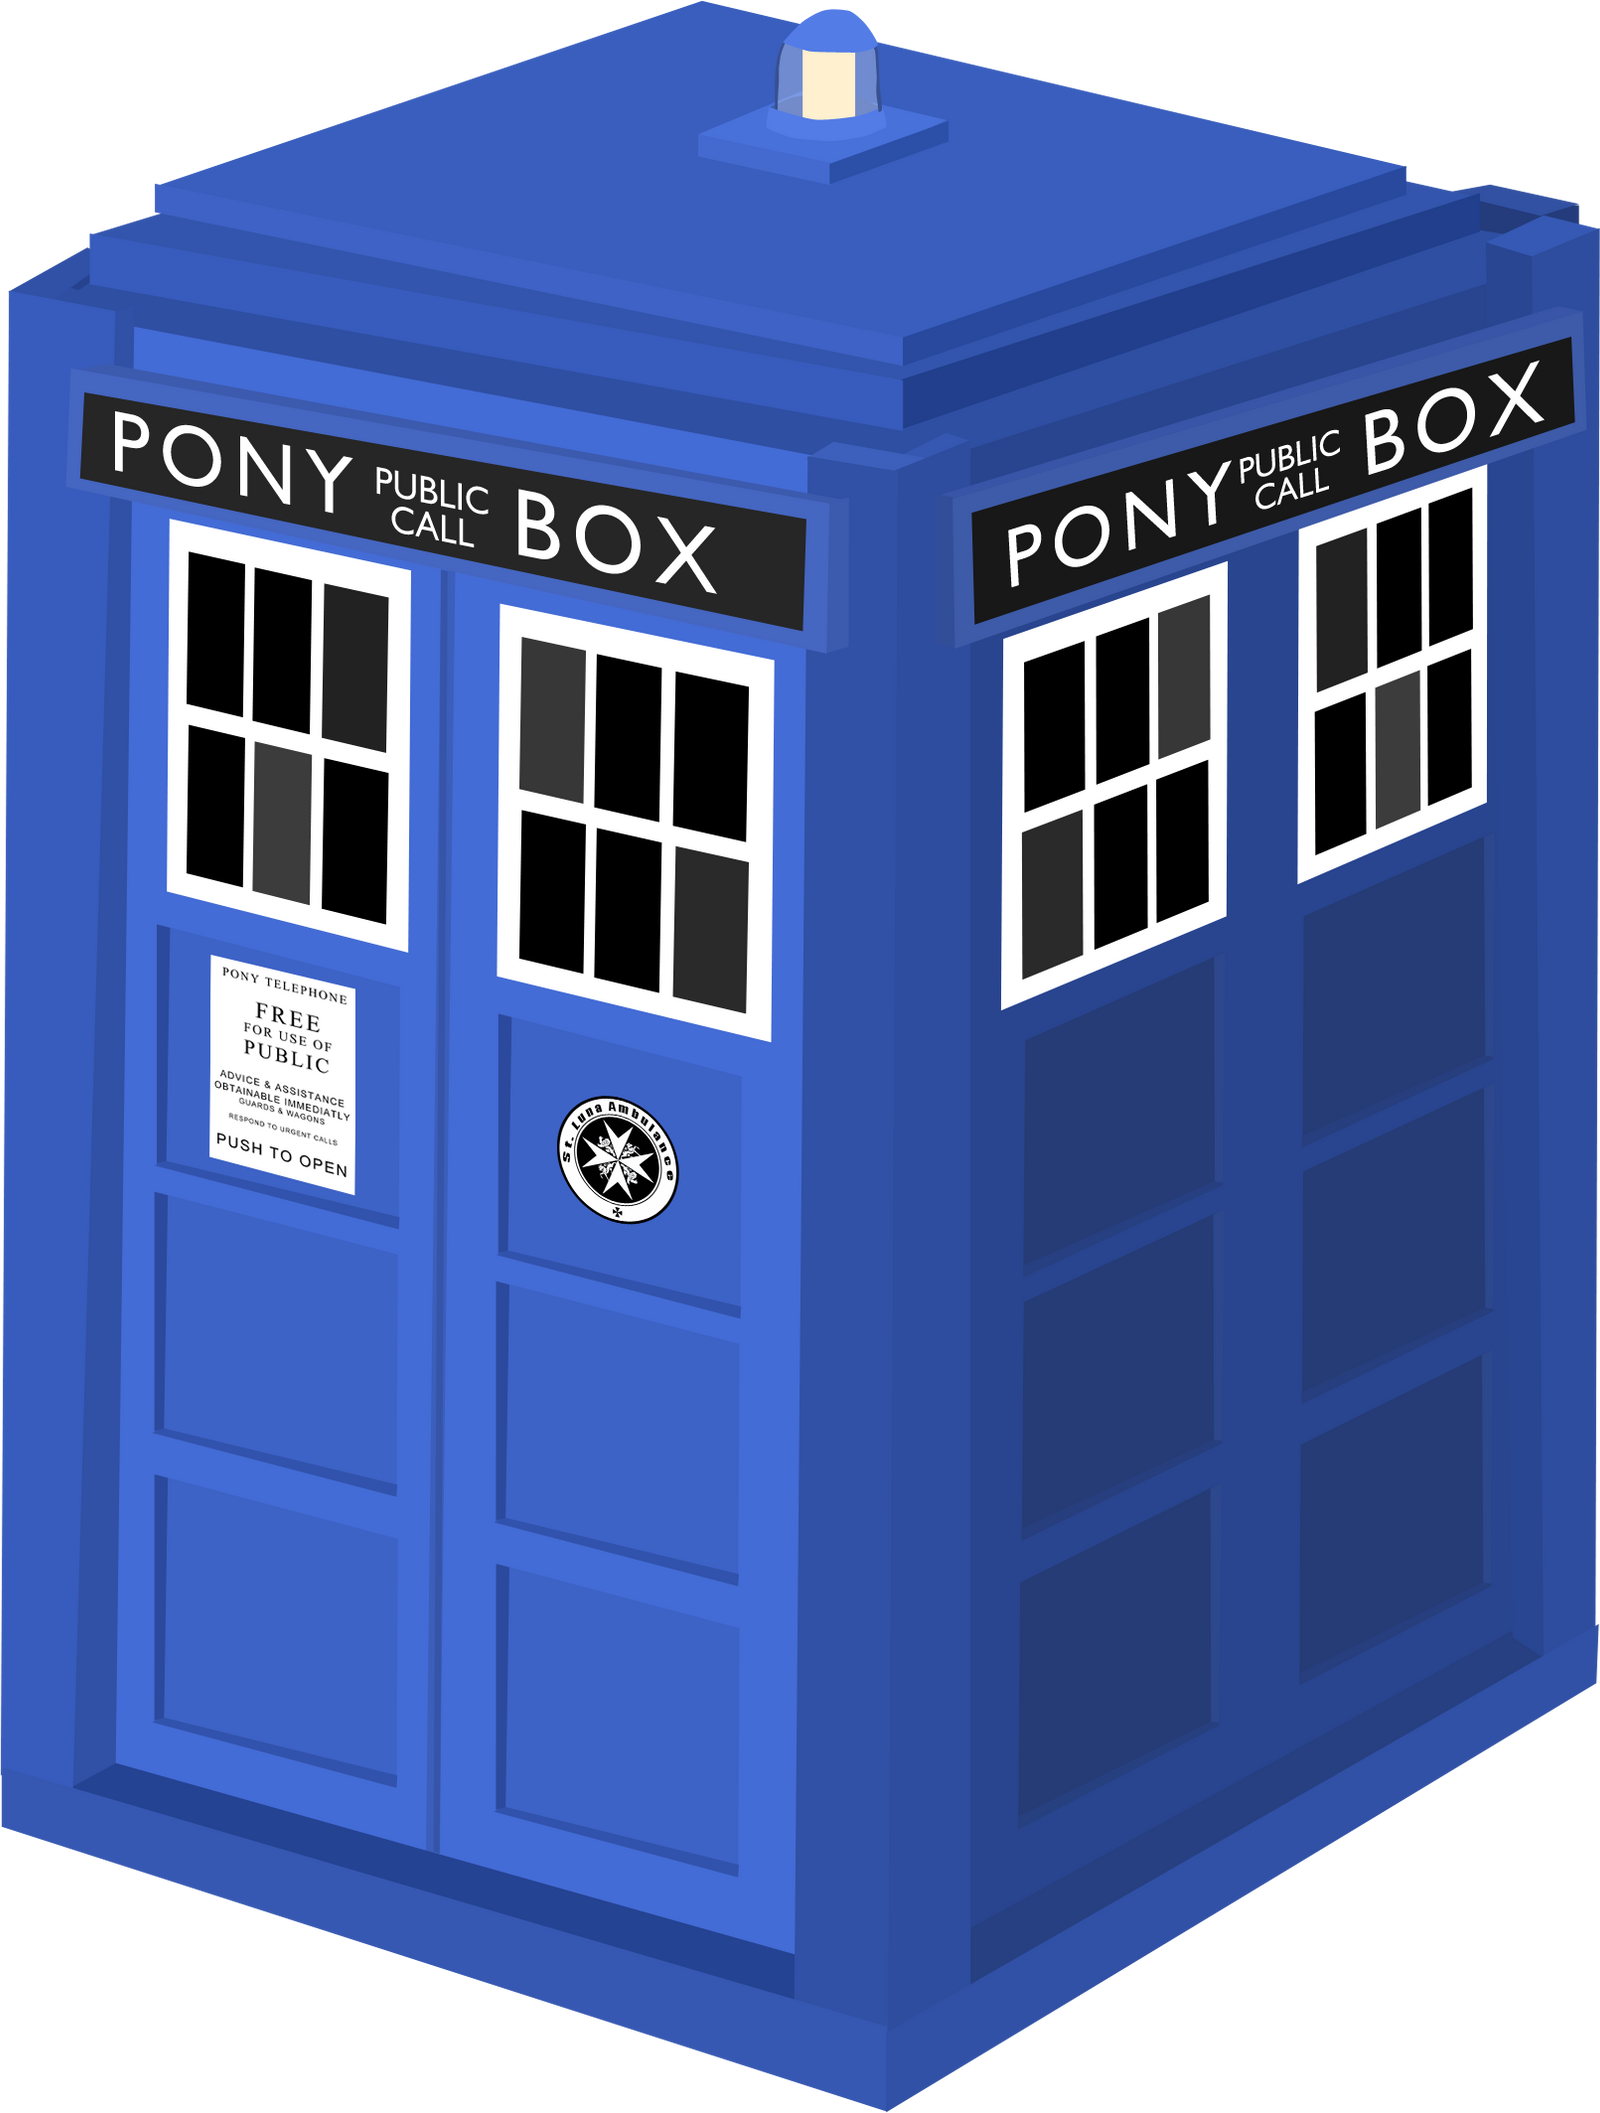 Doctor Whooves' Tardis Vector